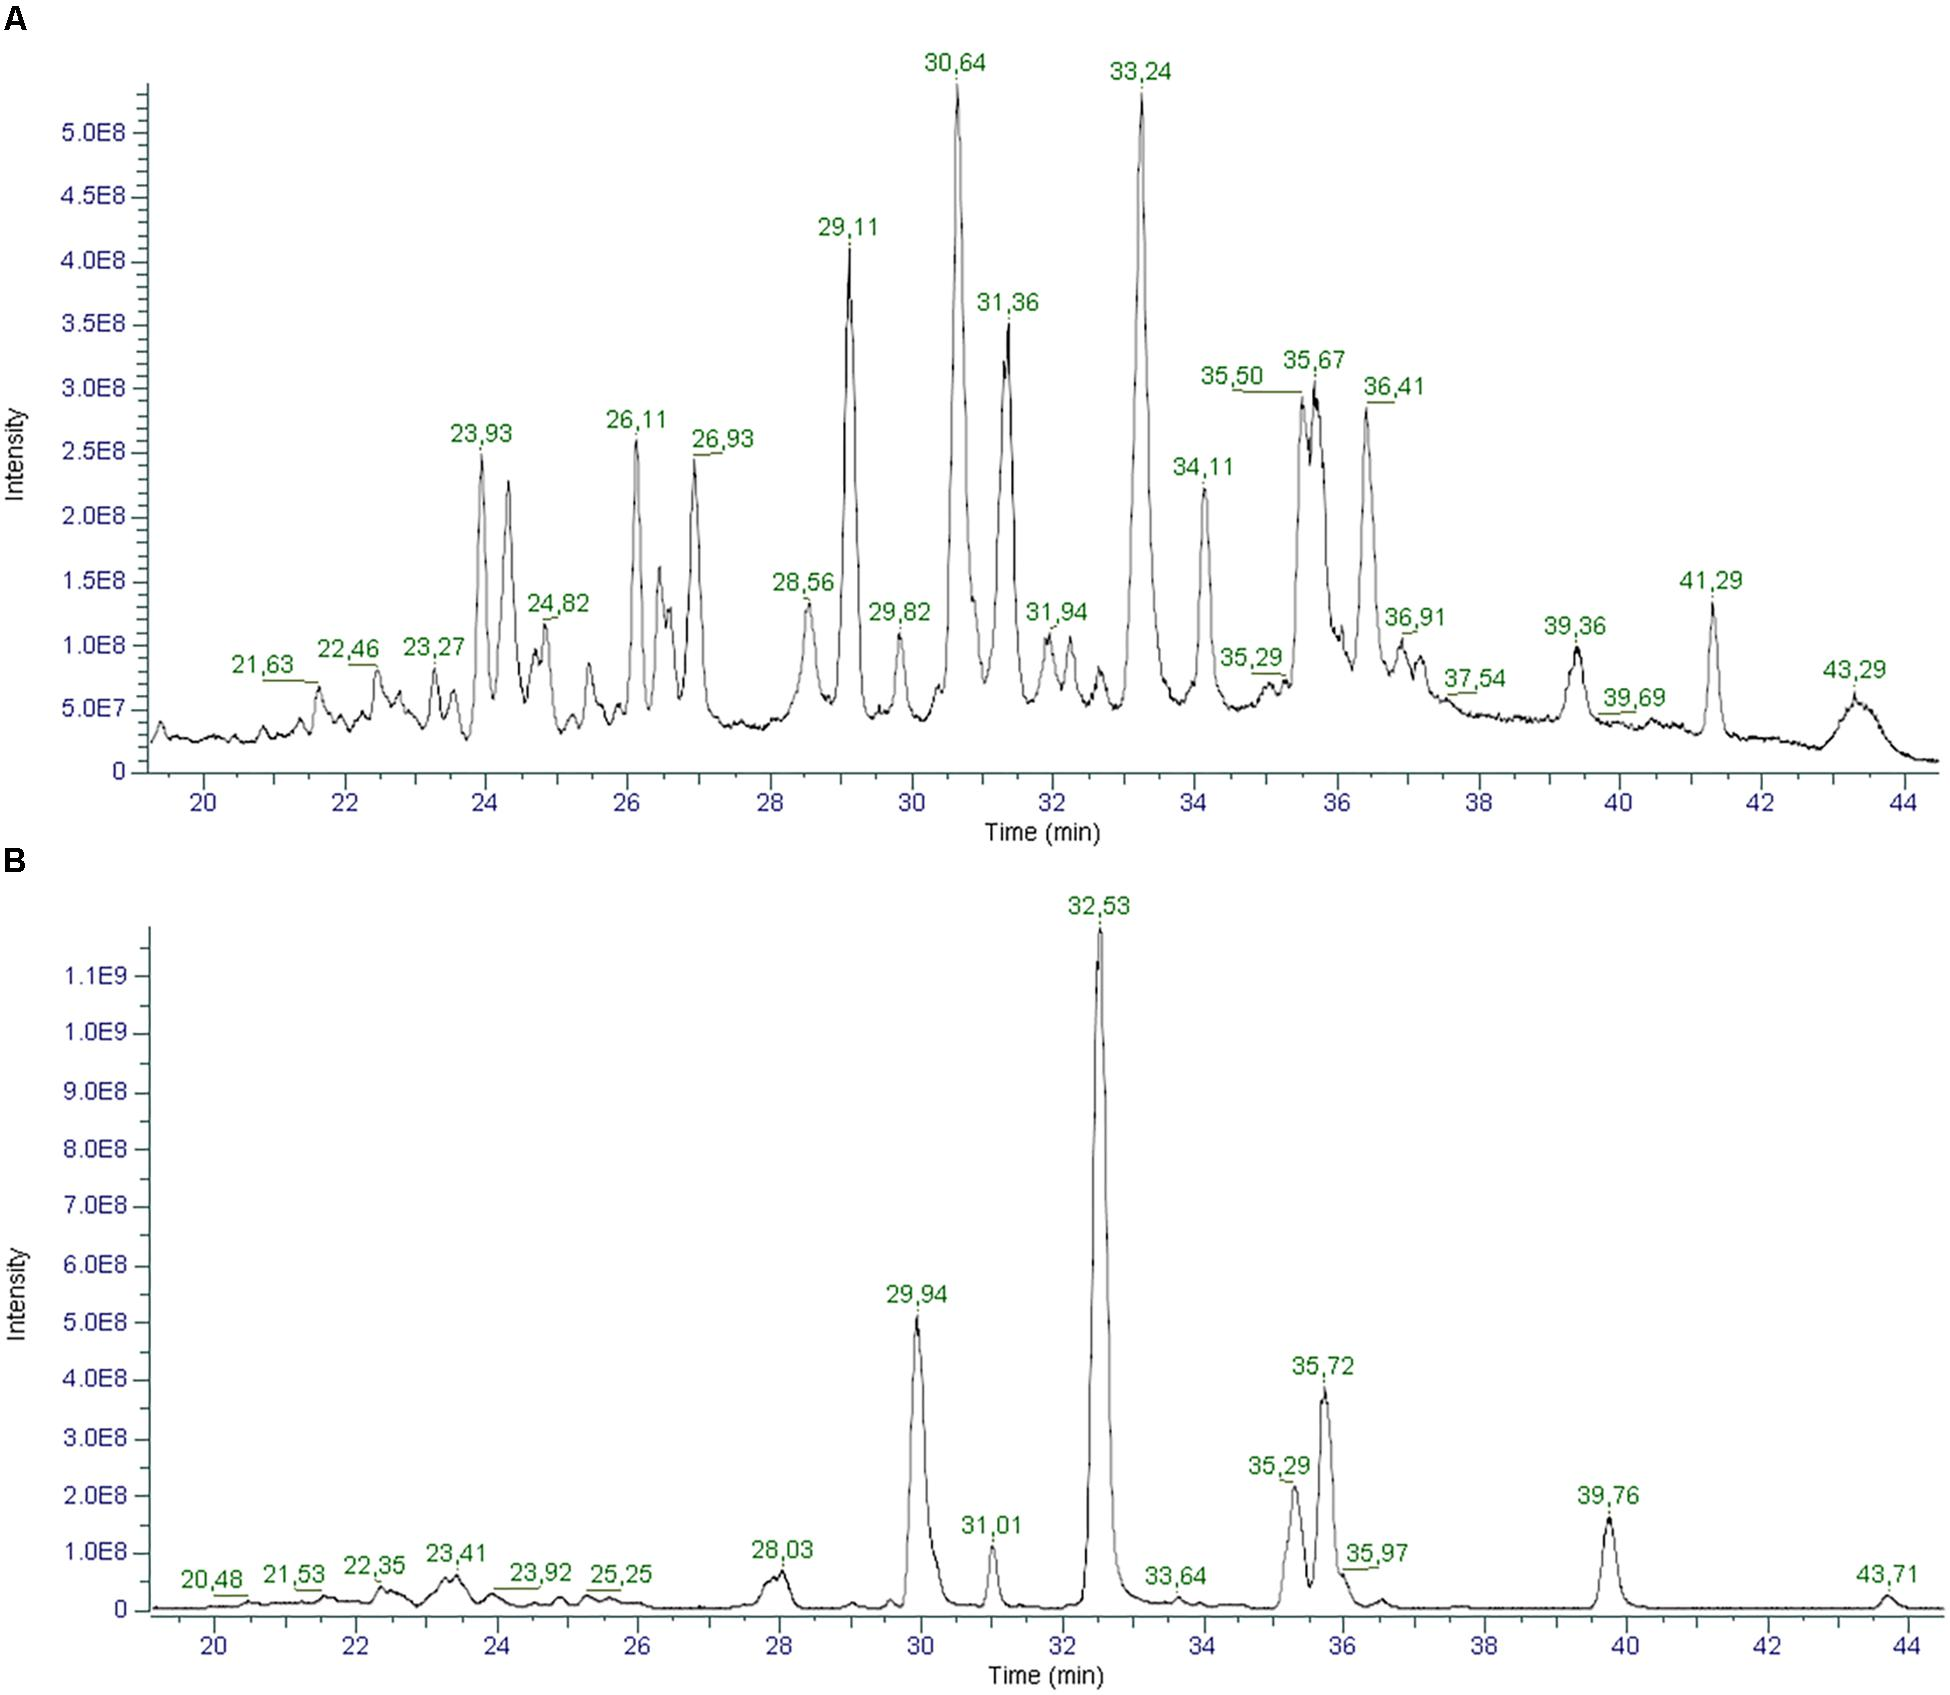 Frontiers | Cannabinoid Profiling of Hemp Seed Oil by Liquid